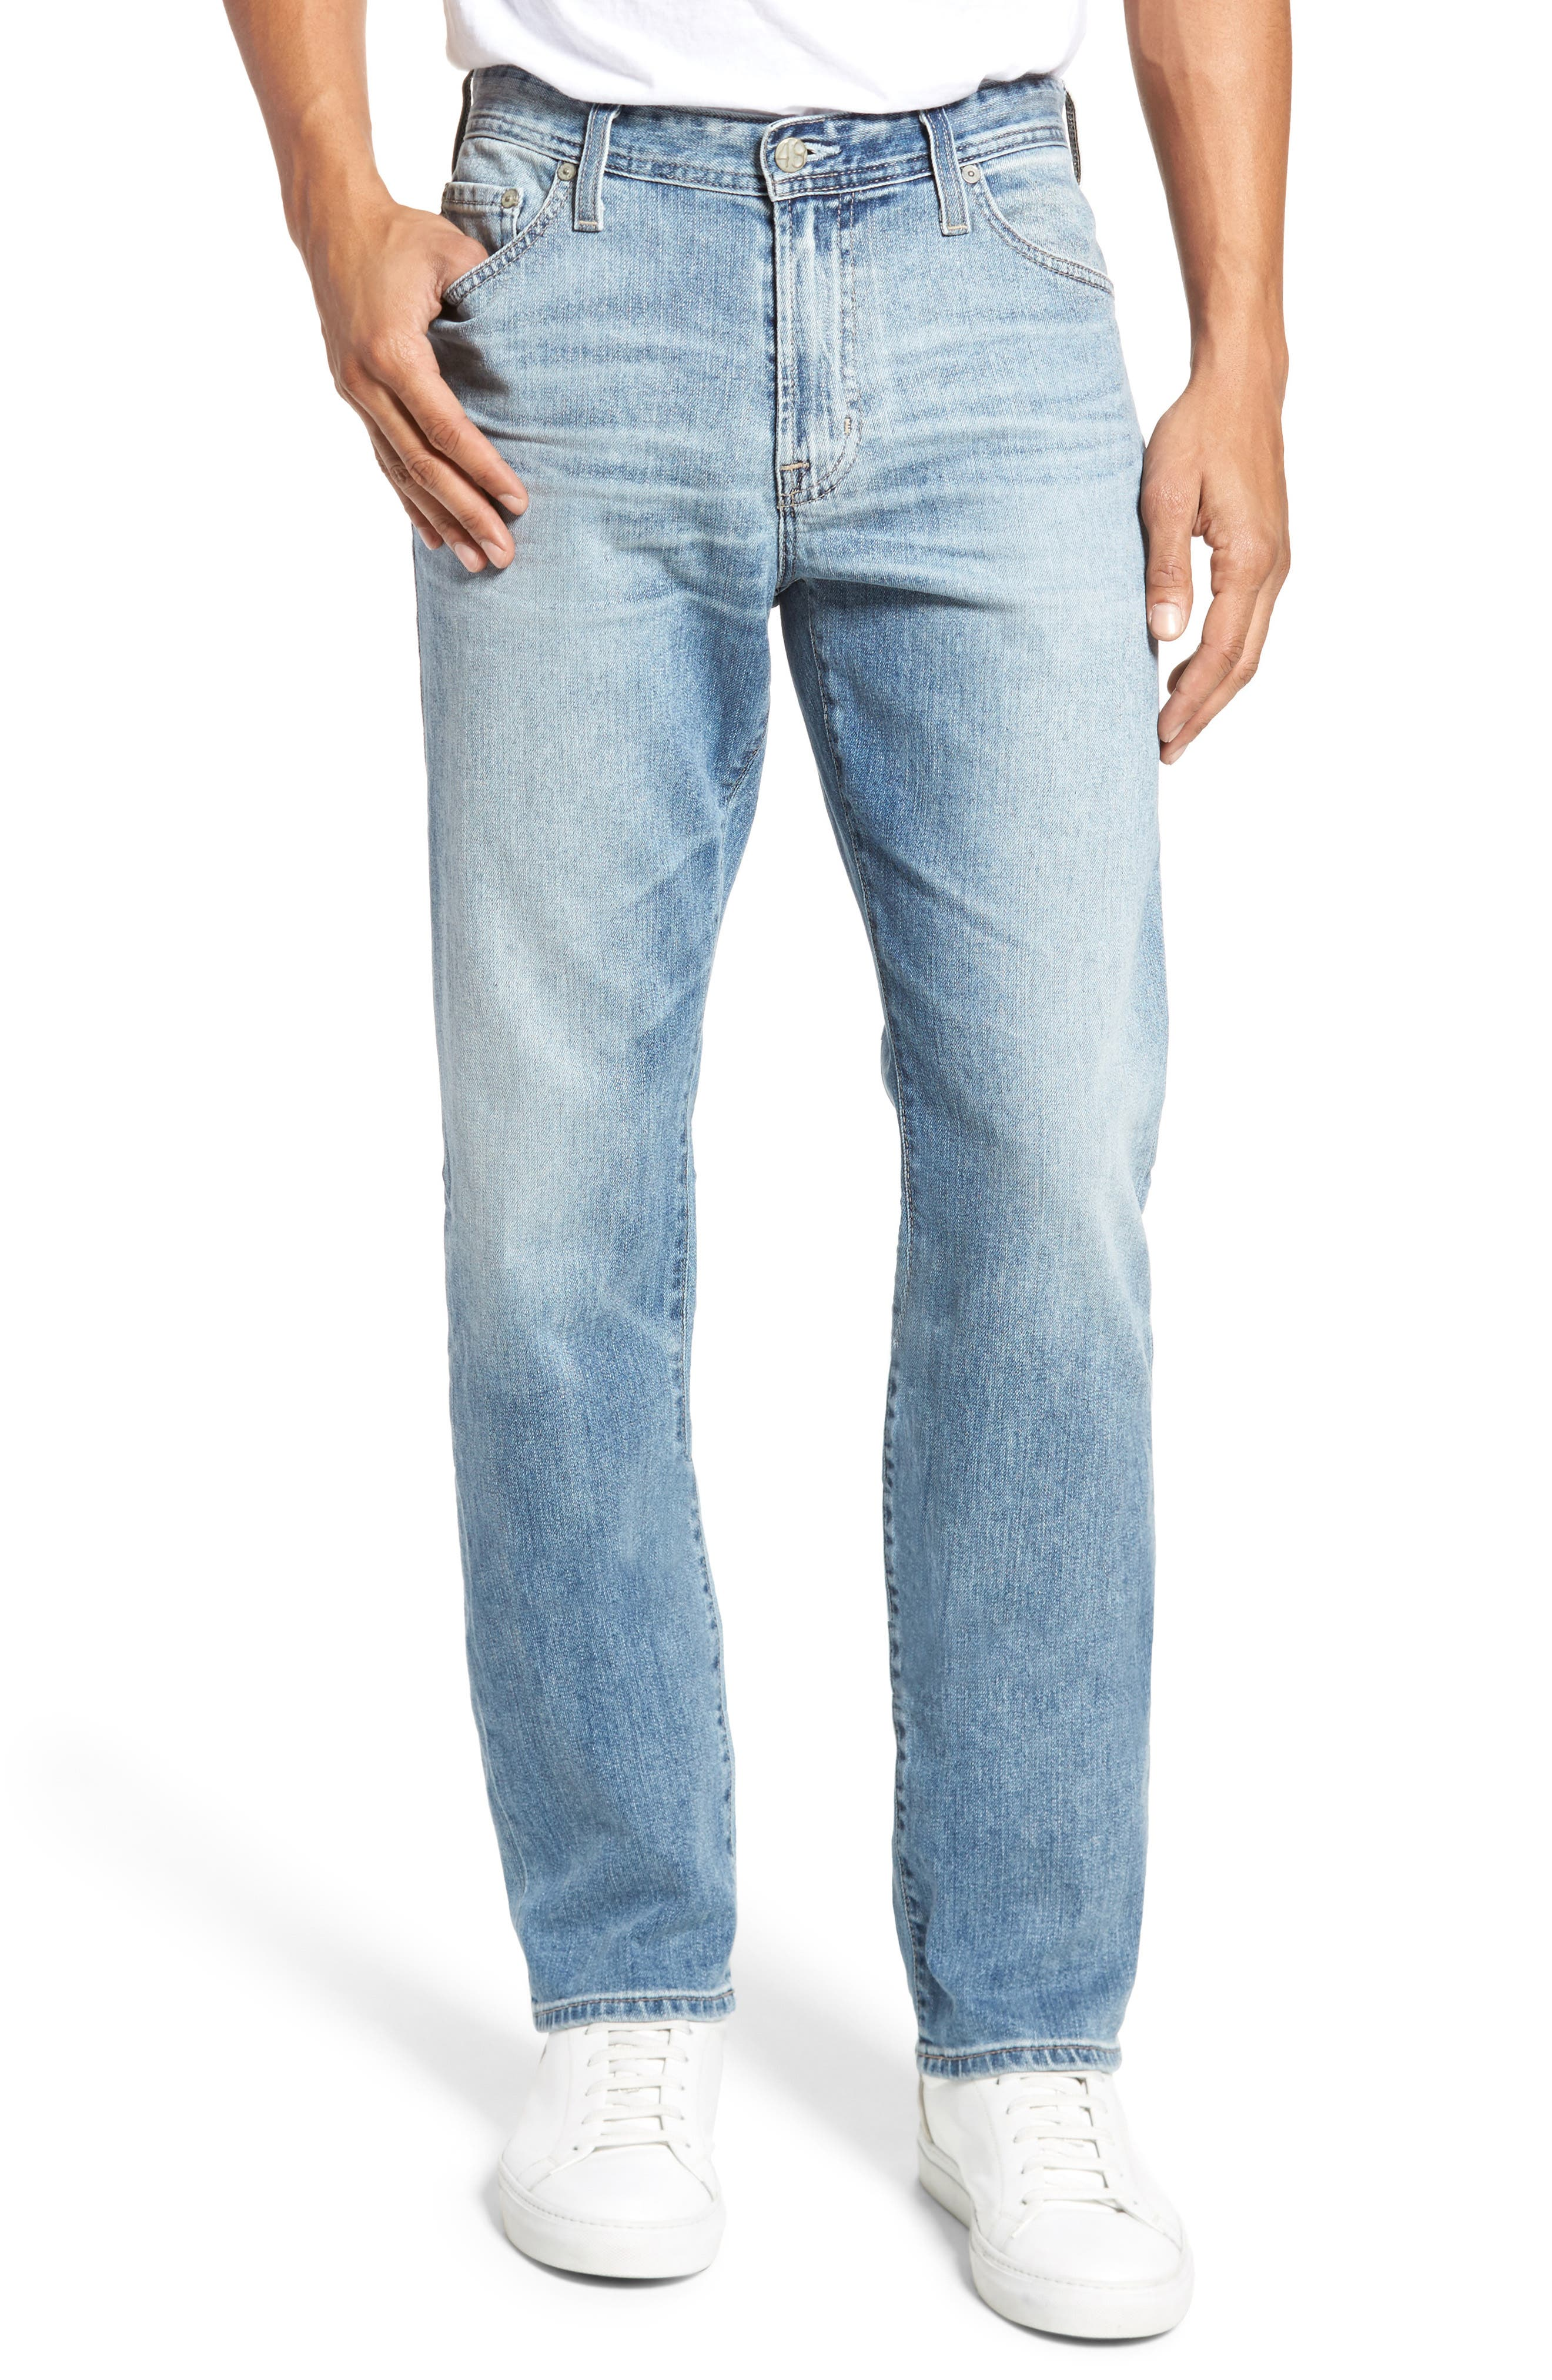 Everett Slim Straight Fit Jeans,                         Main,                         color, 452